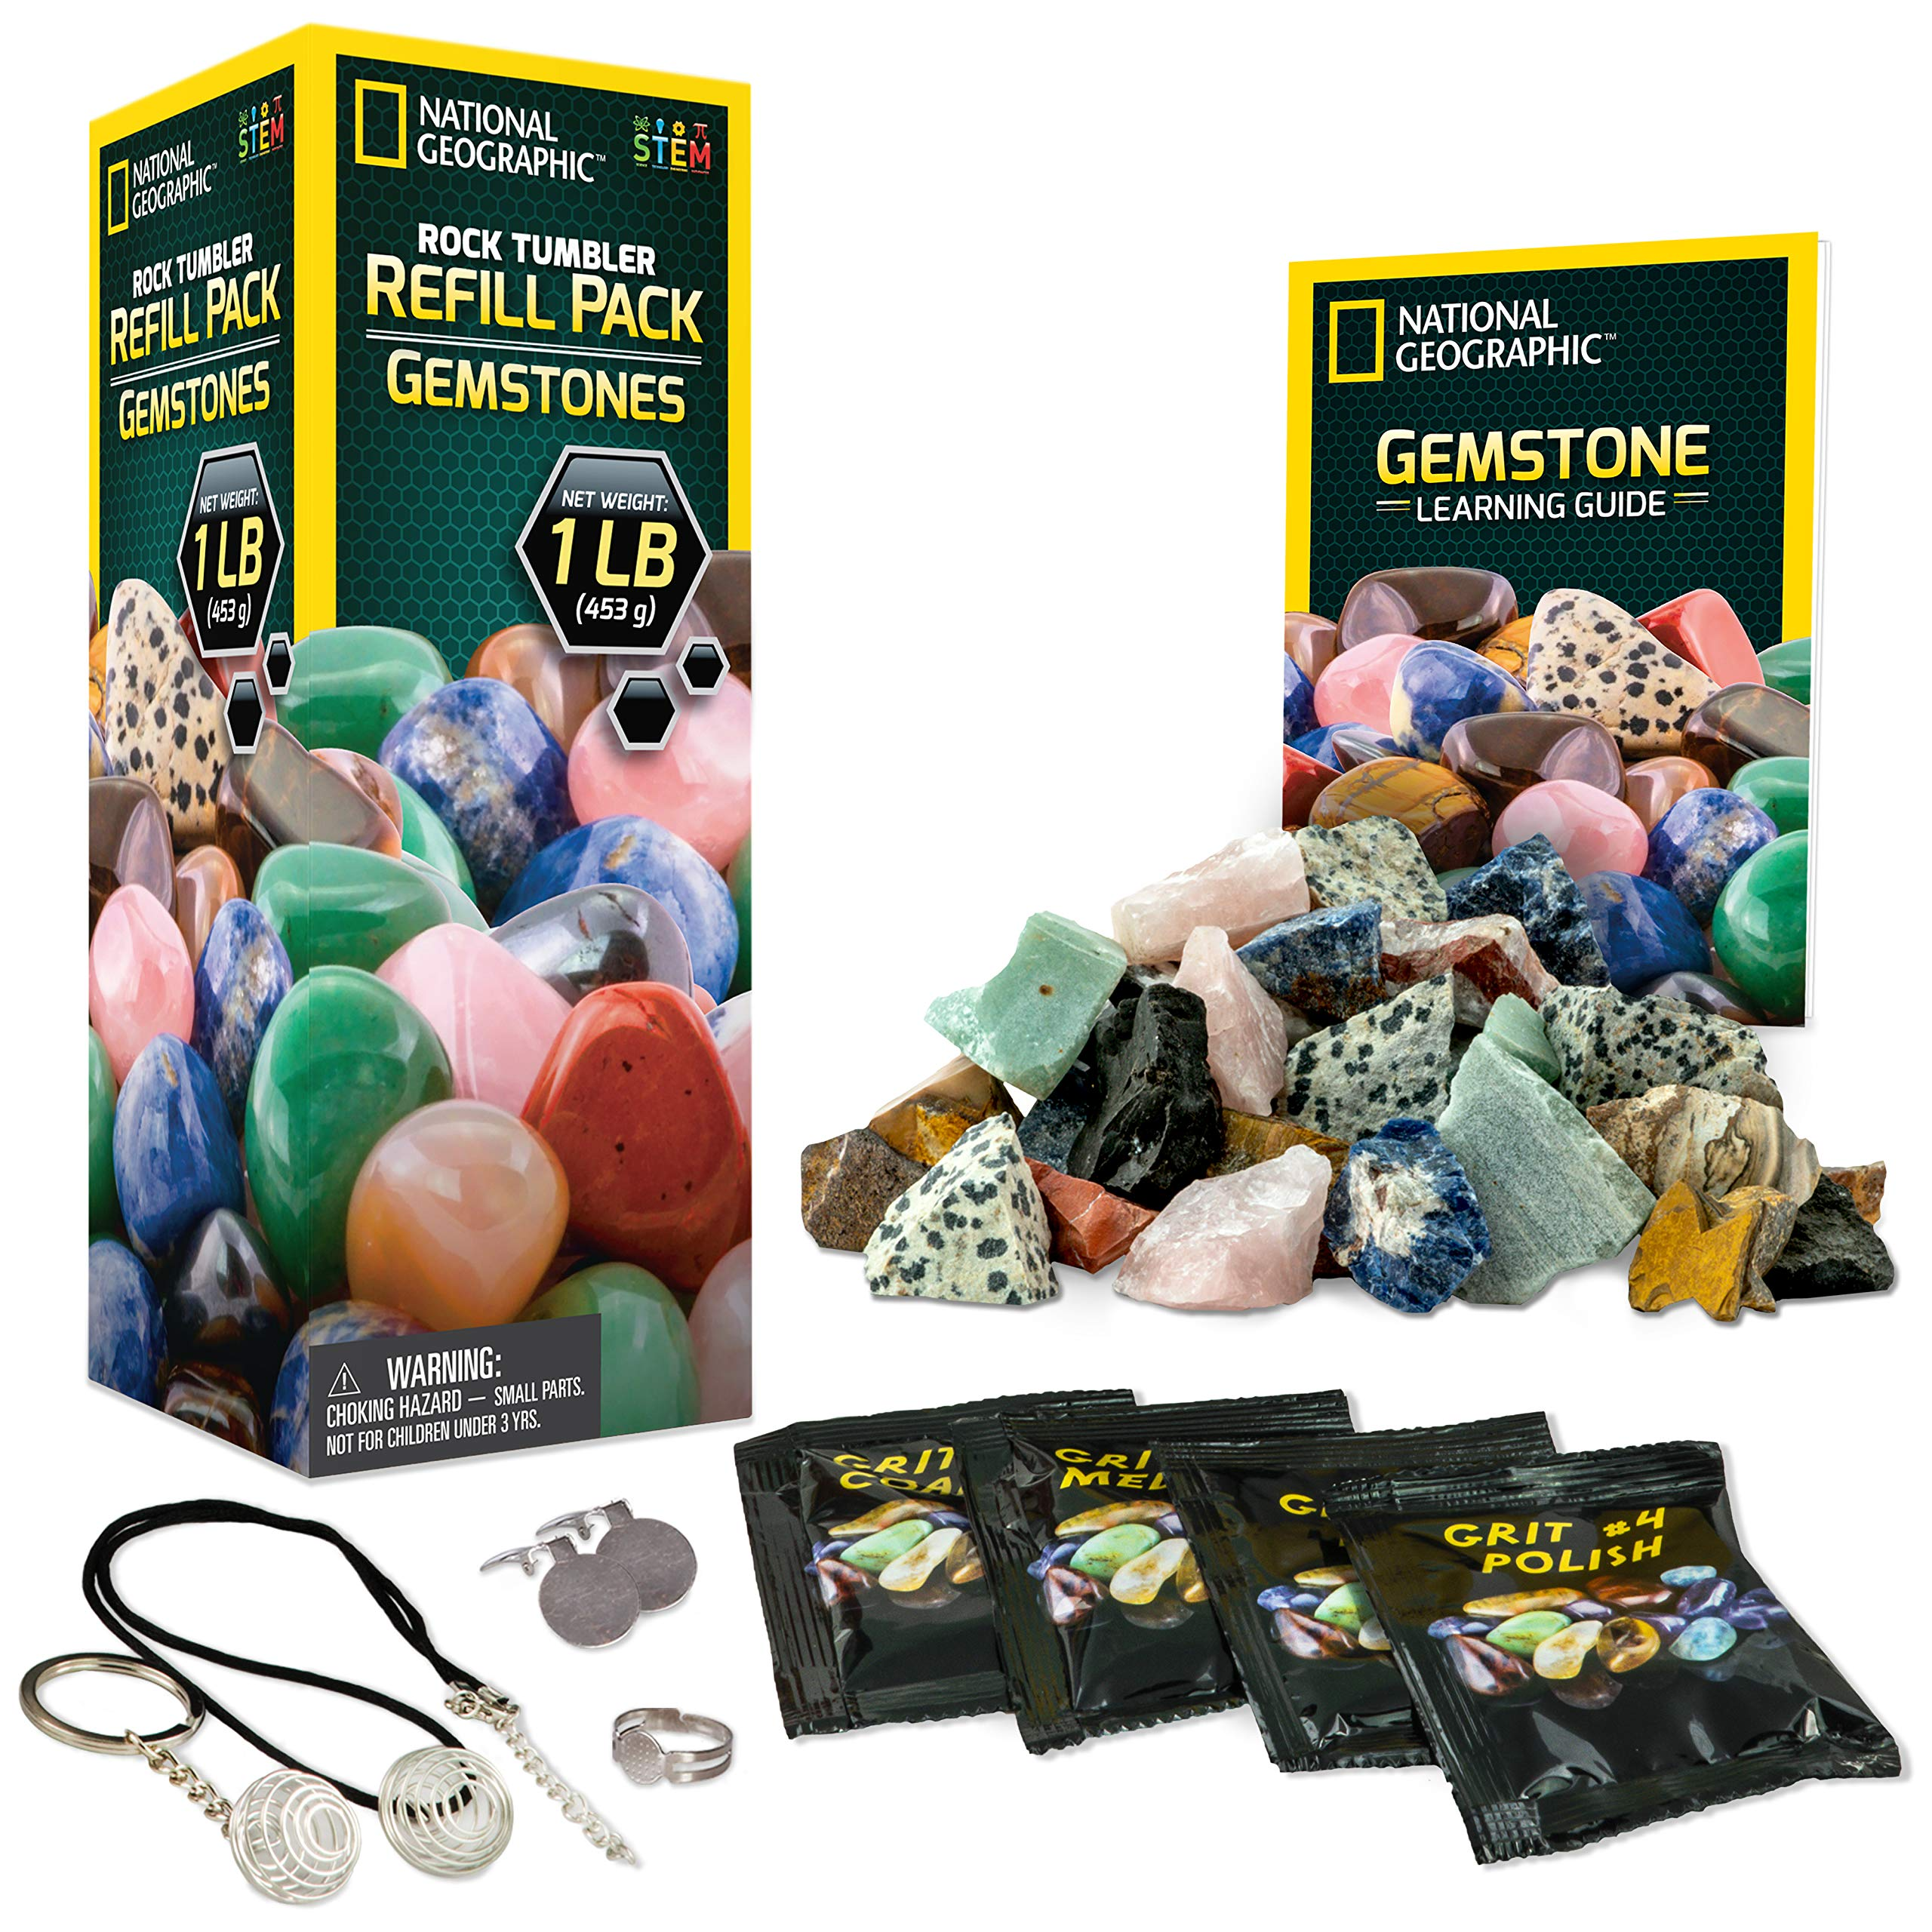 NATIONAL GEOGRAPHIC Rock Tumbler Refill Kit - Gemstone Mix of 9 varieties including Tiger's Eye, Amethyst and Quartz - Comes with 4 grades of Grit, Jewelry Fastenings and detailed Learning Guide by NATIONAL GEOGRAPHIC